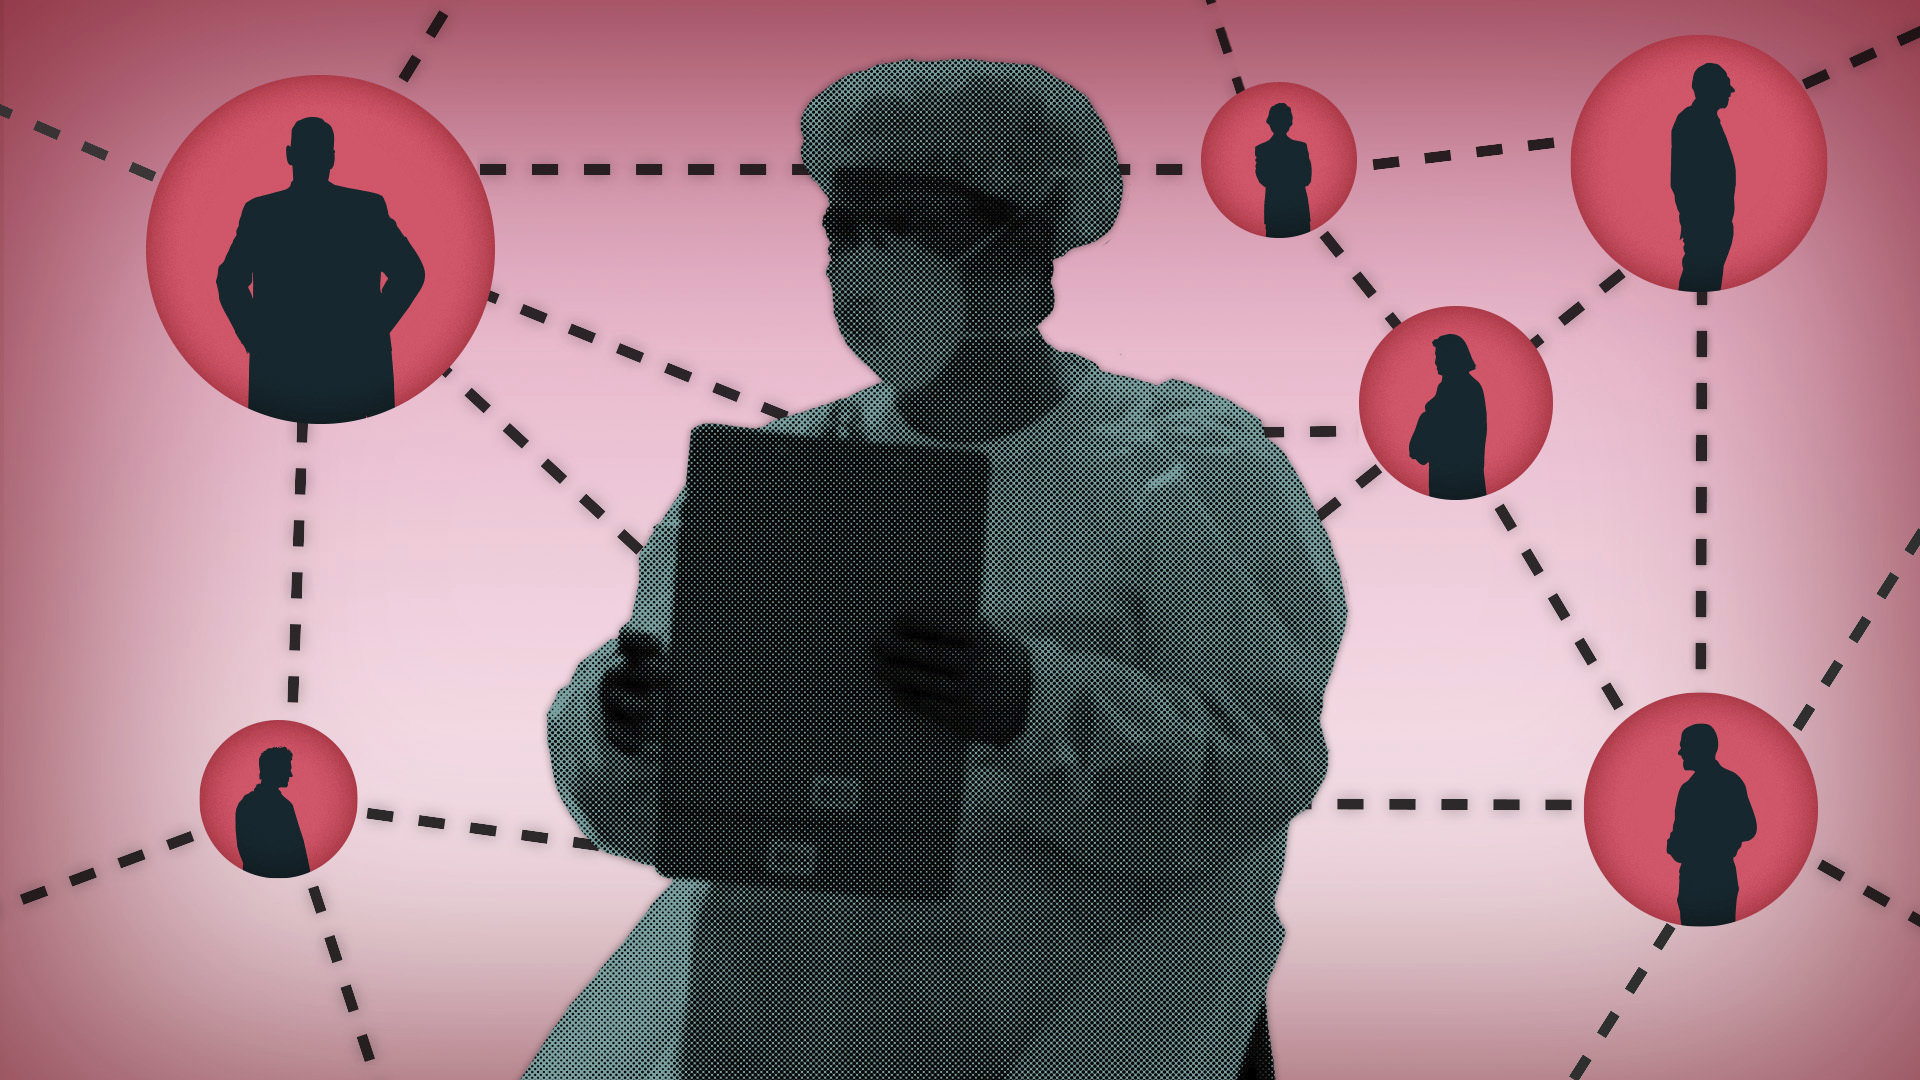 VIRUS OUTBREAK VIRAL QUESTIONS CONTACT TRACING